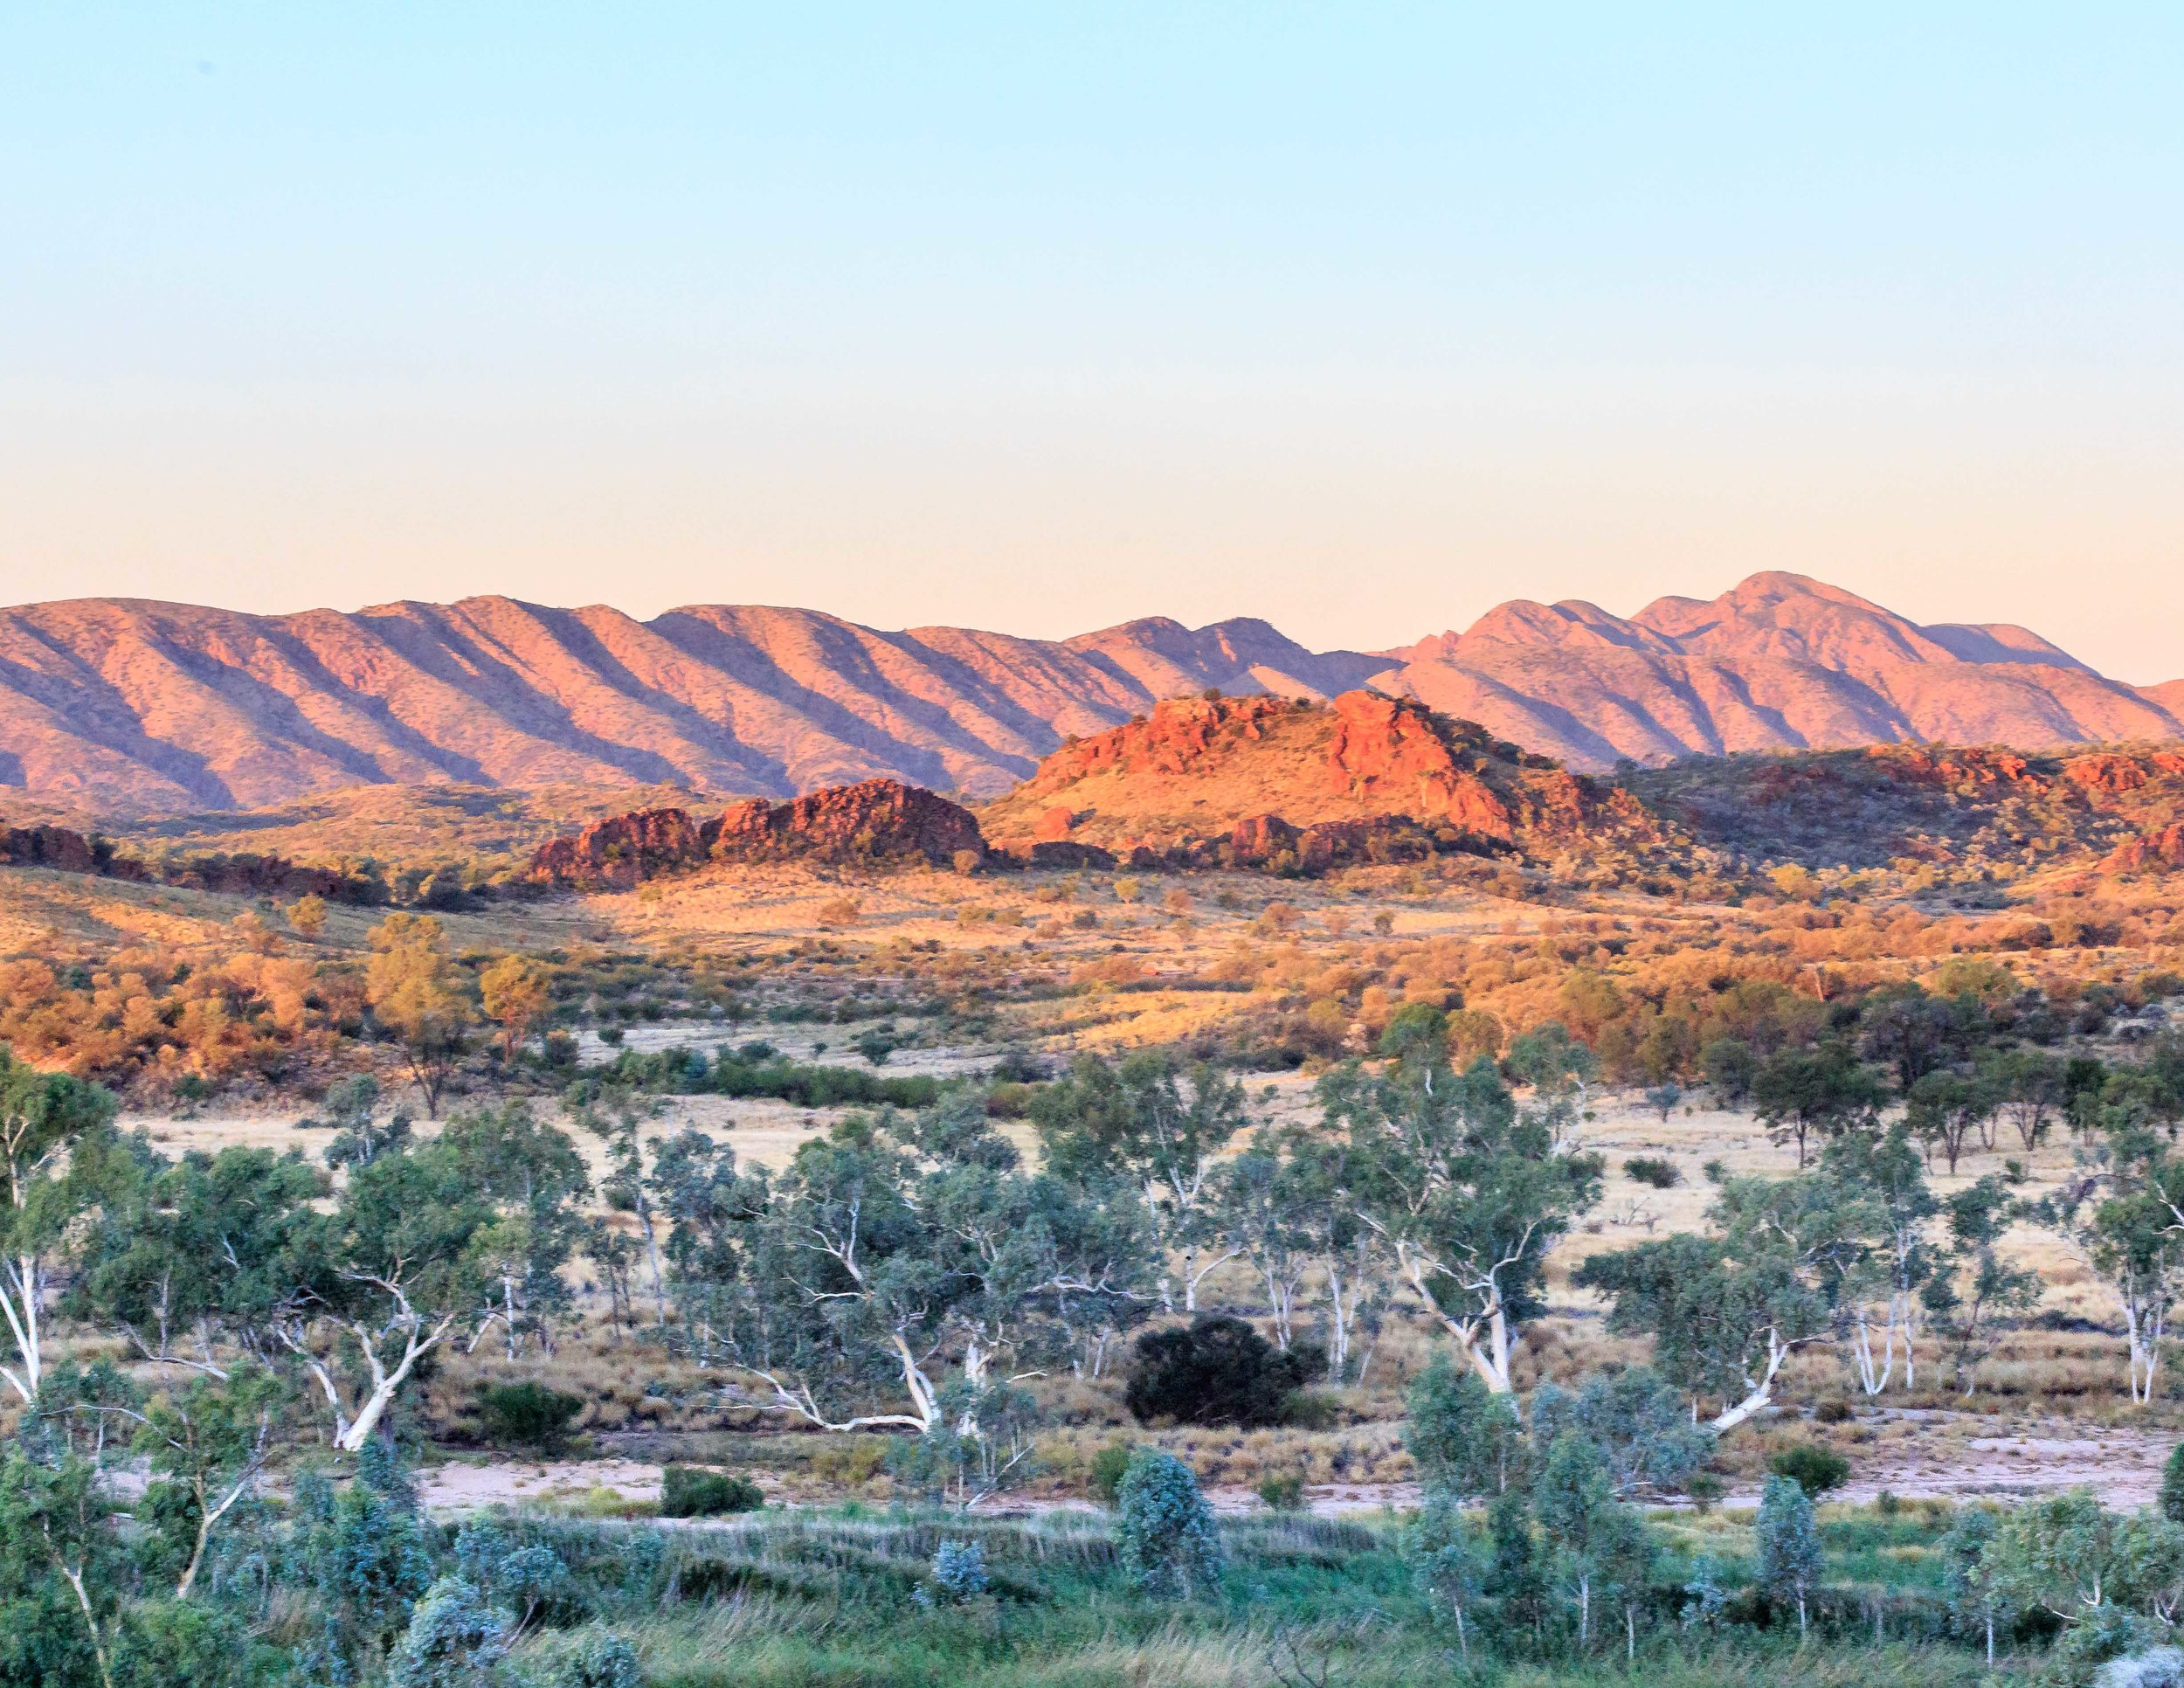 Must-see places in Australia: Mount Sonder lookout in the West MacDonnell Ranges